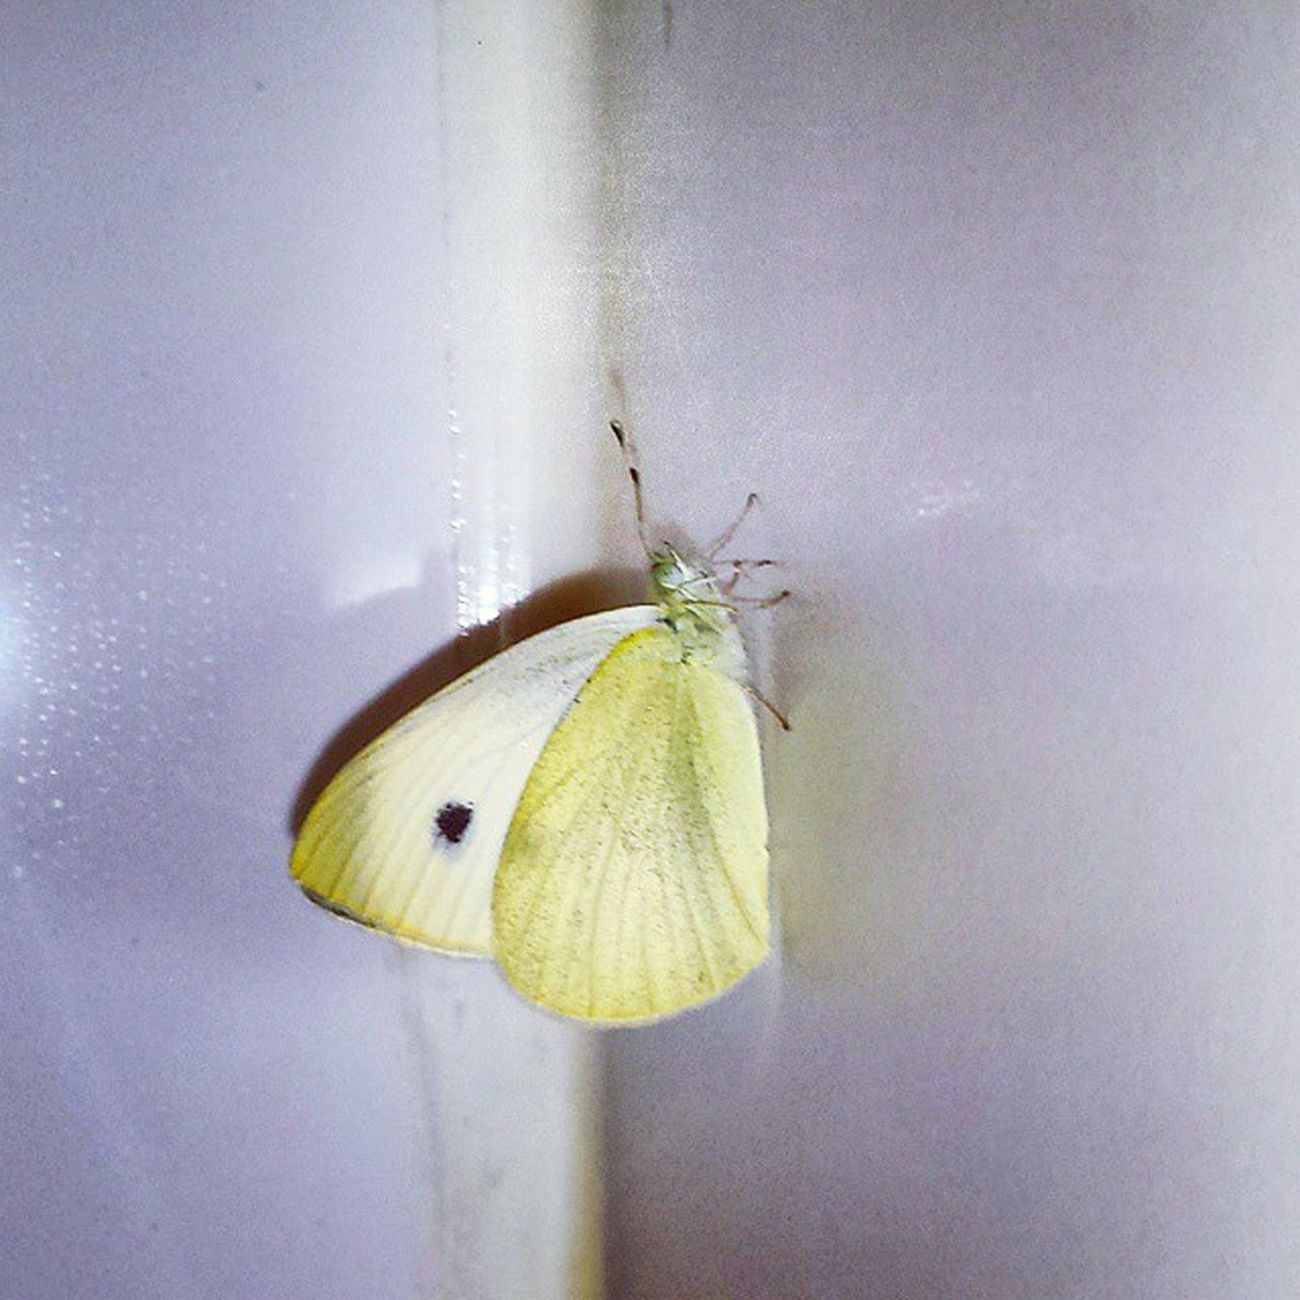 Butterfly Yellowbutterfly Dot Naturelovers Nature Jerseycity Jc Insect_perfection Insect Bug this is a cabbage white butterfly